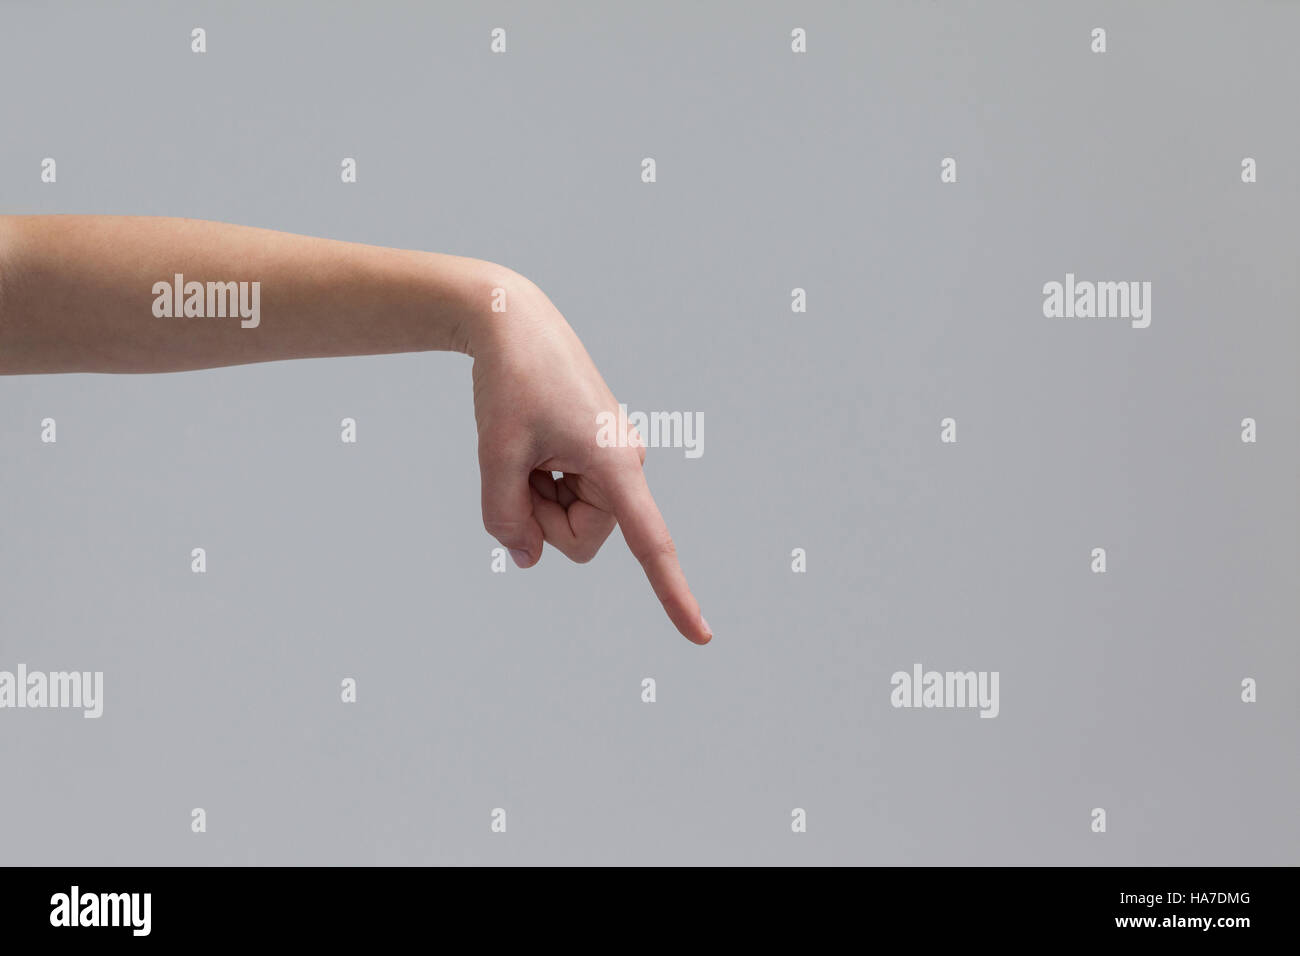 Hand of a woman pointing downwards - Stock Image